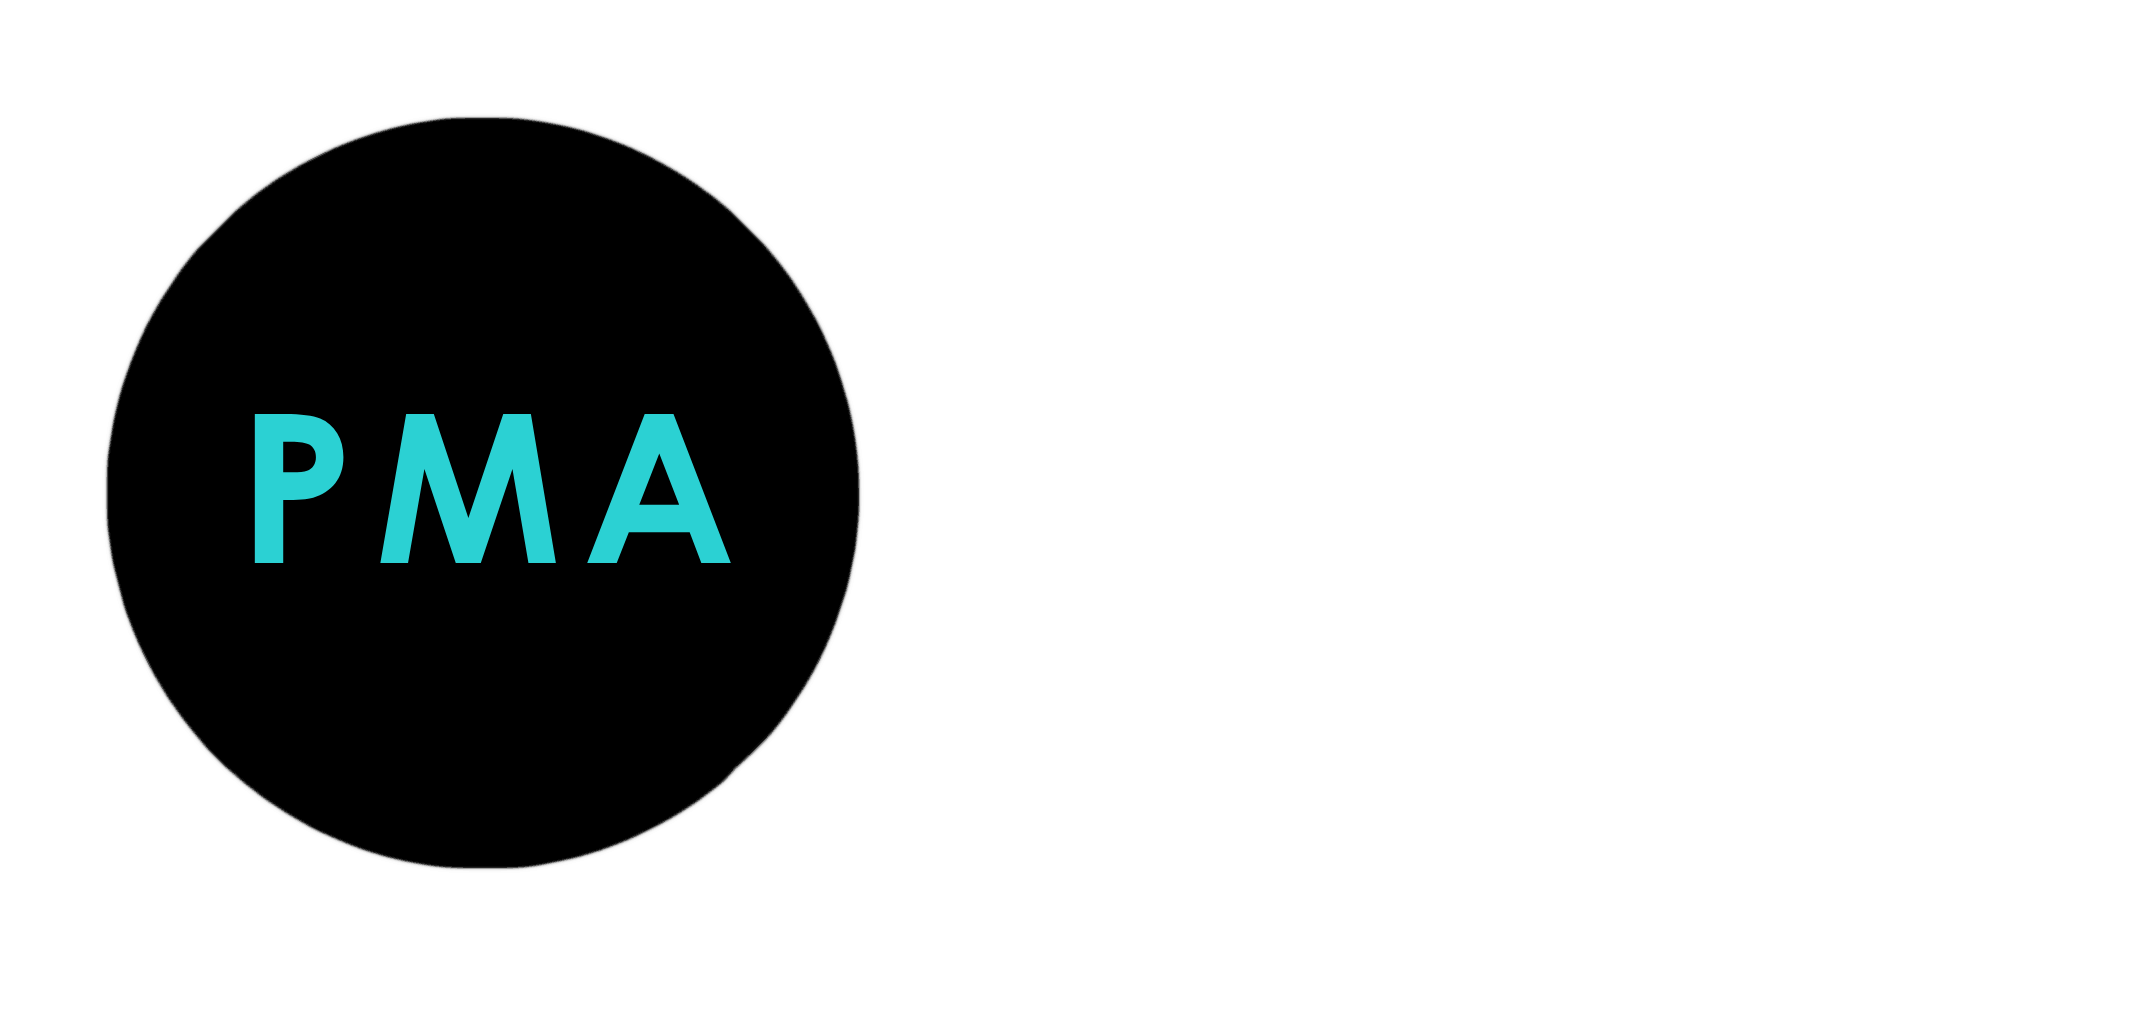 Members of the Personal Management Association